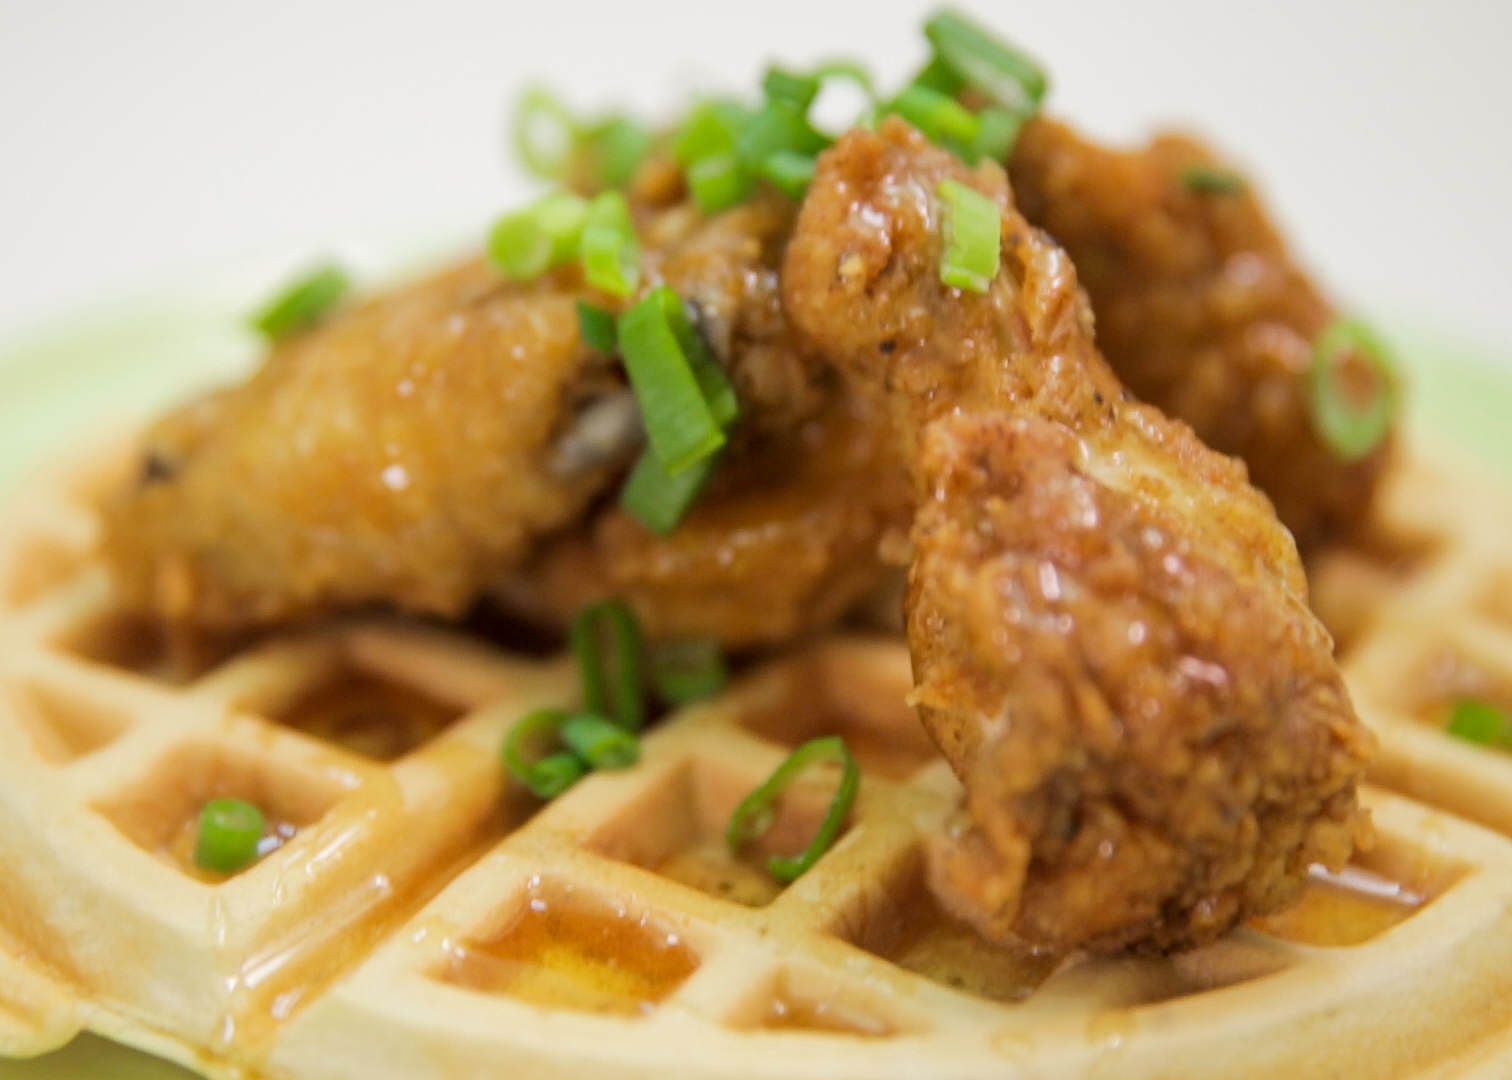 Heres How To Make Chicken And Bacon Waffles Chickenwaffle1